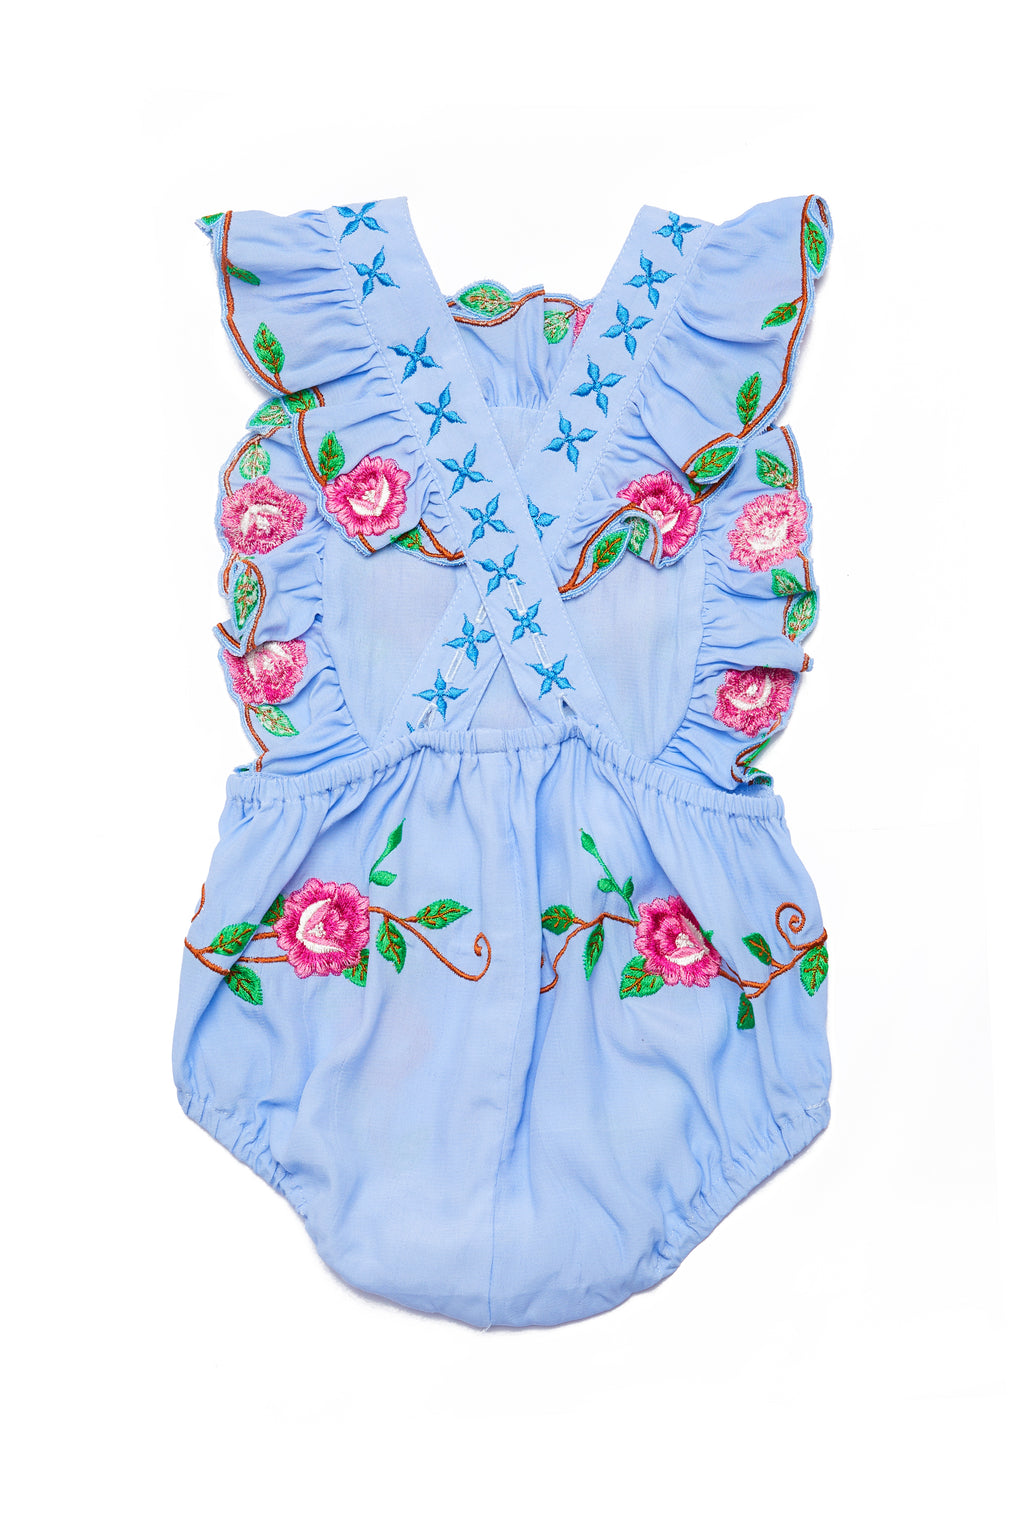 FILLYBOO MINI - 'IS THERE LOVE ON MARS?' - BABY PLAYSUIT - CHAMBRAY